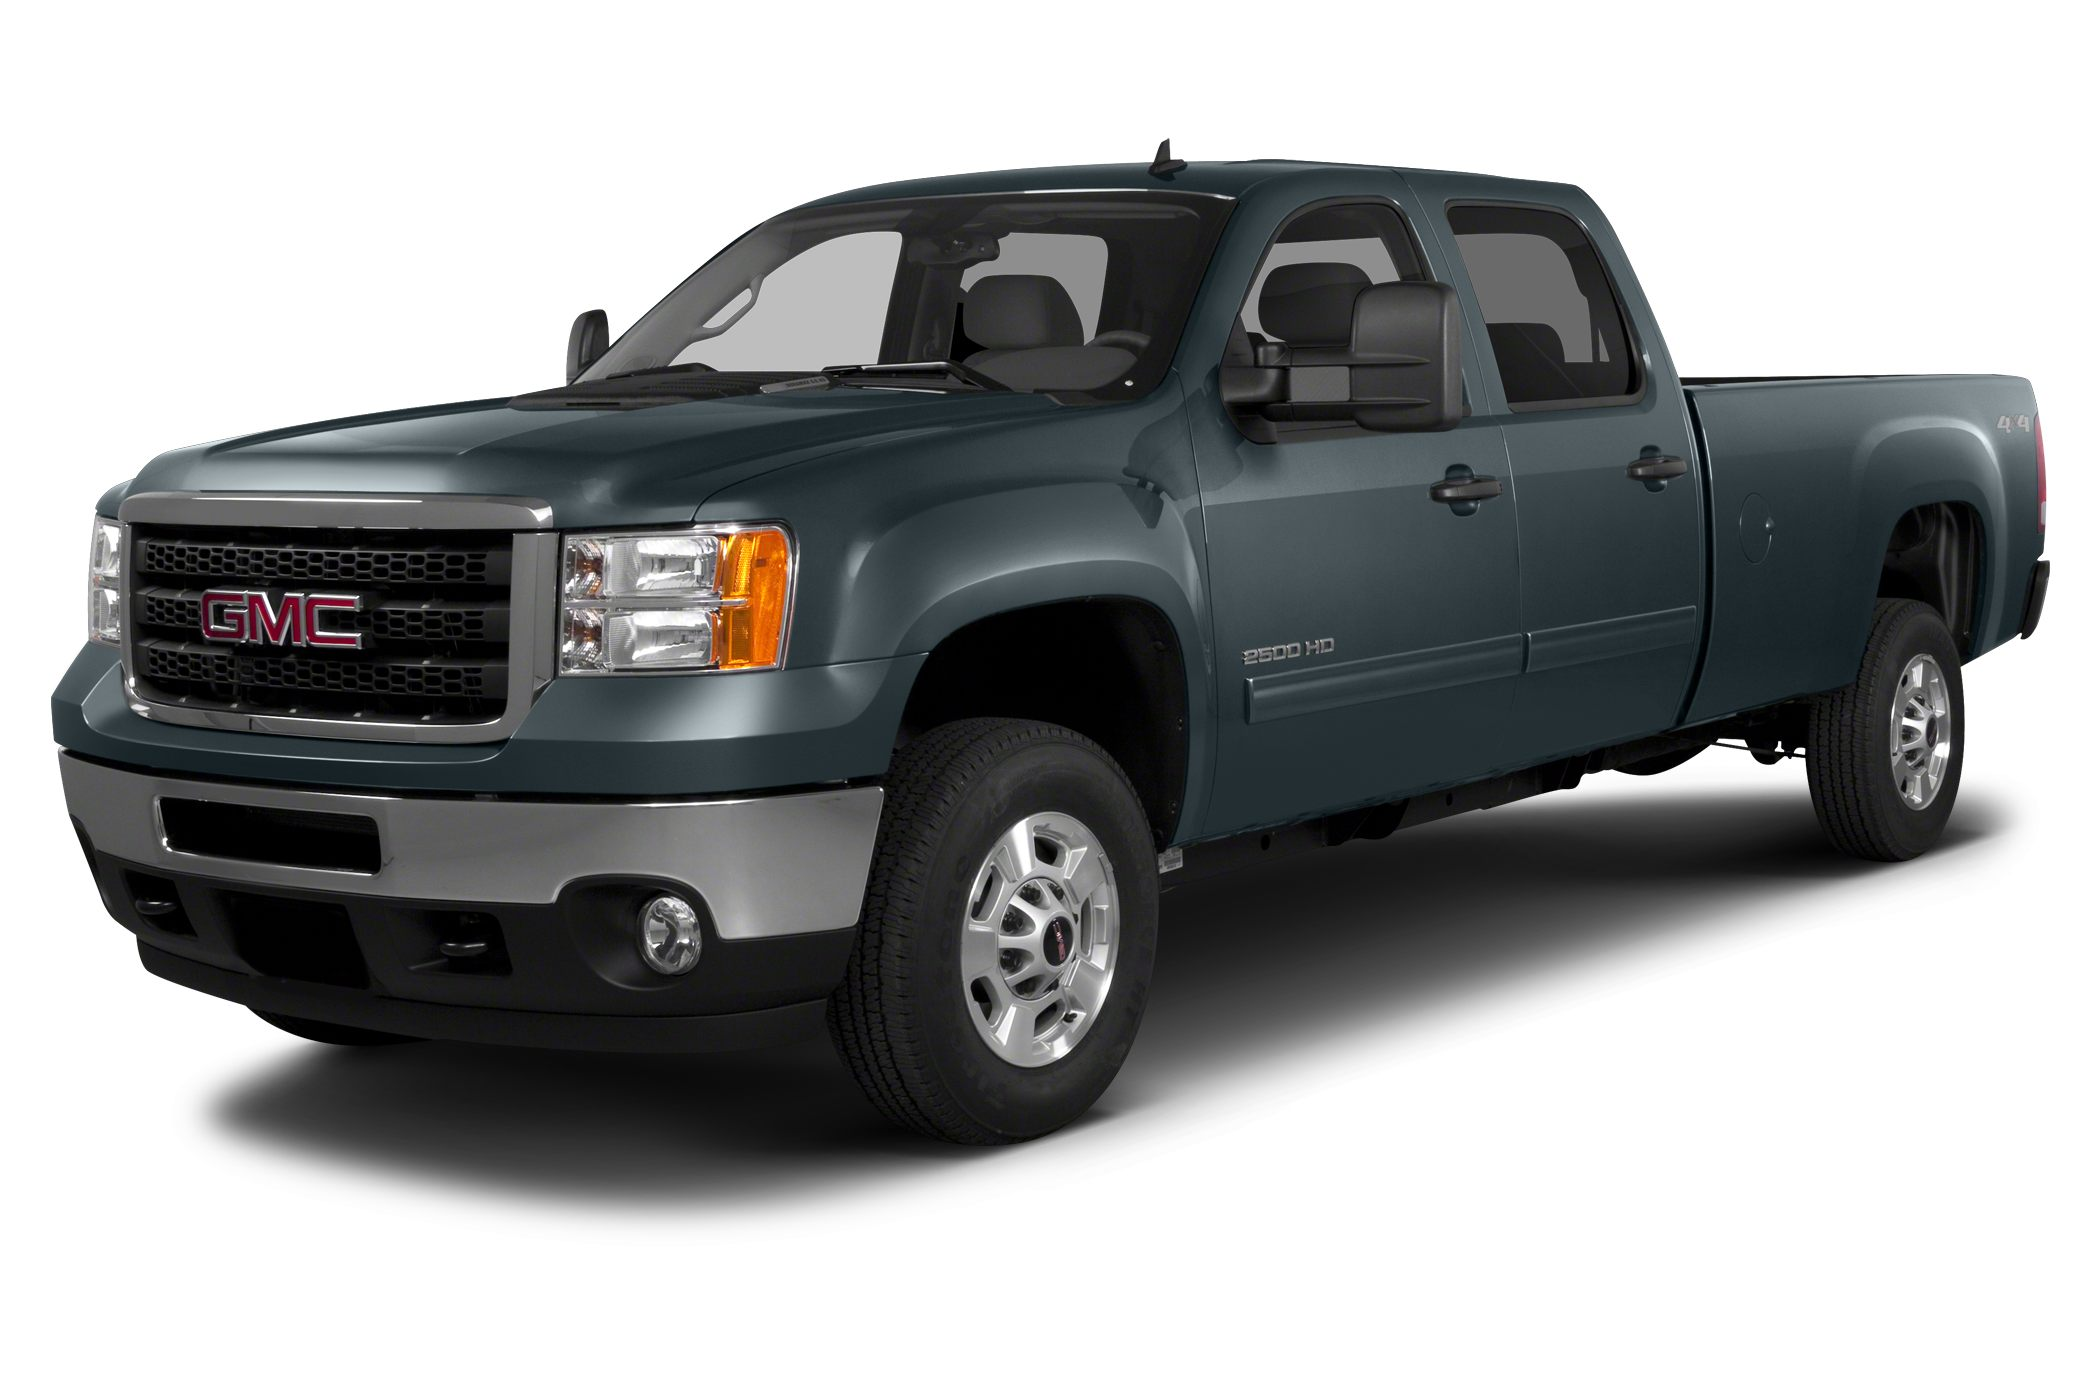 2014 GMC Sierra 2500 SLT Crew Cab Pickup for sale in Helena for $62,965 with 0 miles